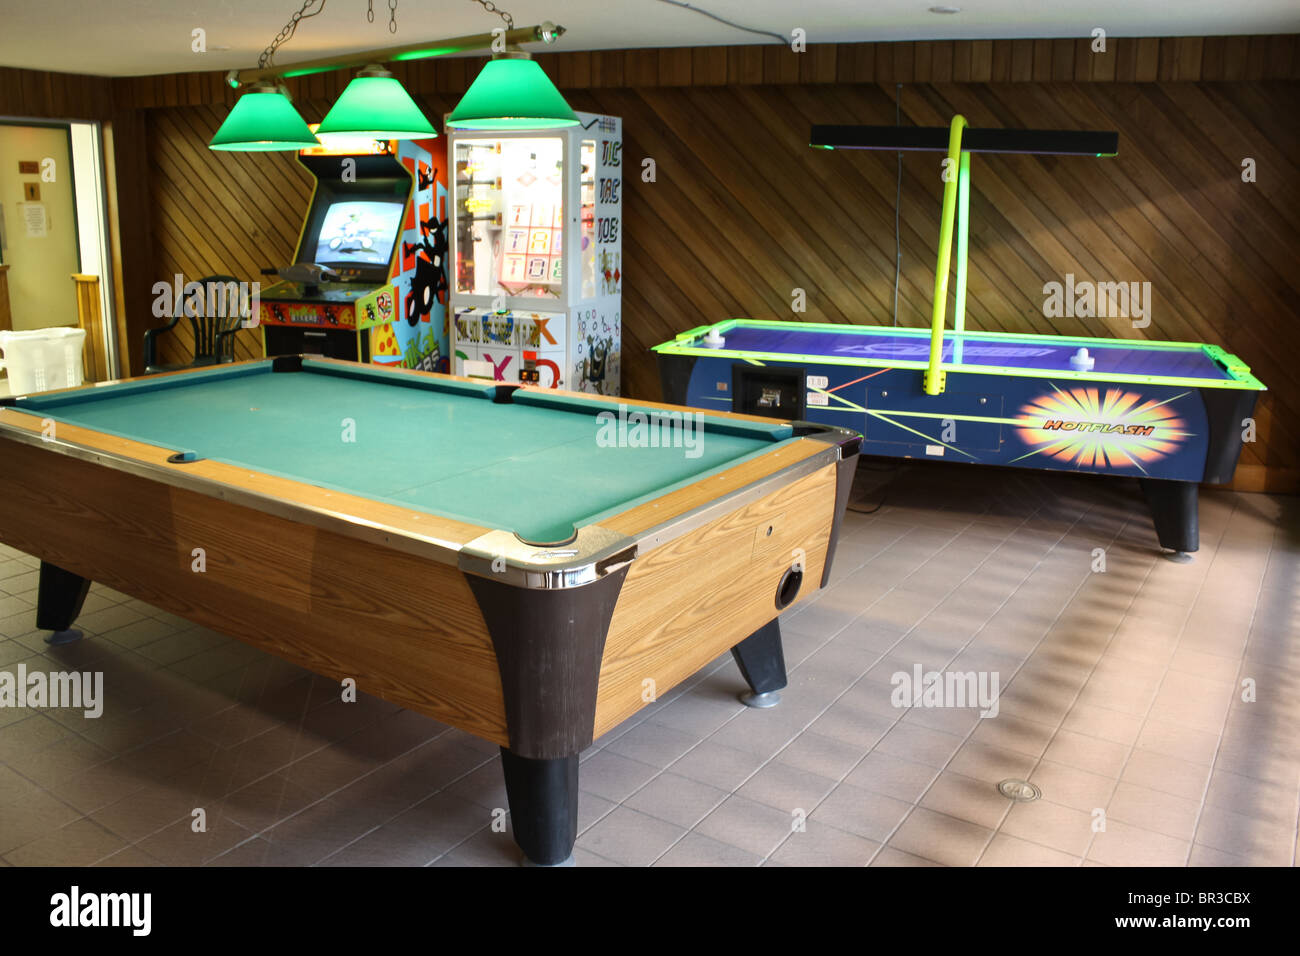 stock photo game room billiard air hockey table arcade game